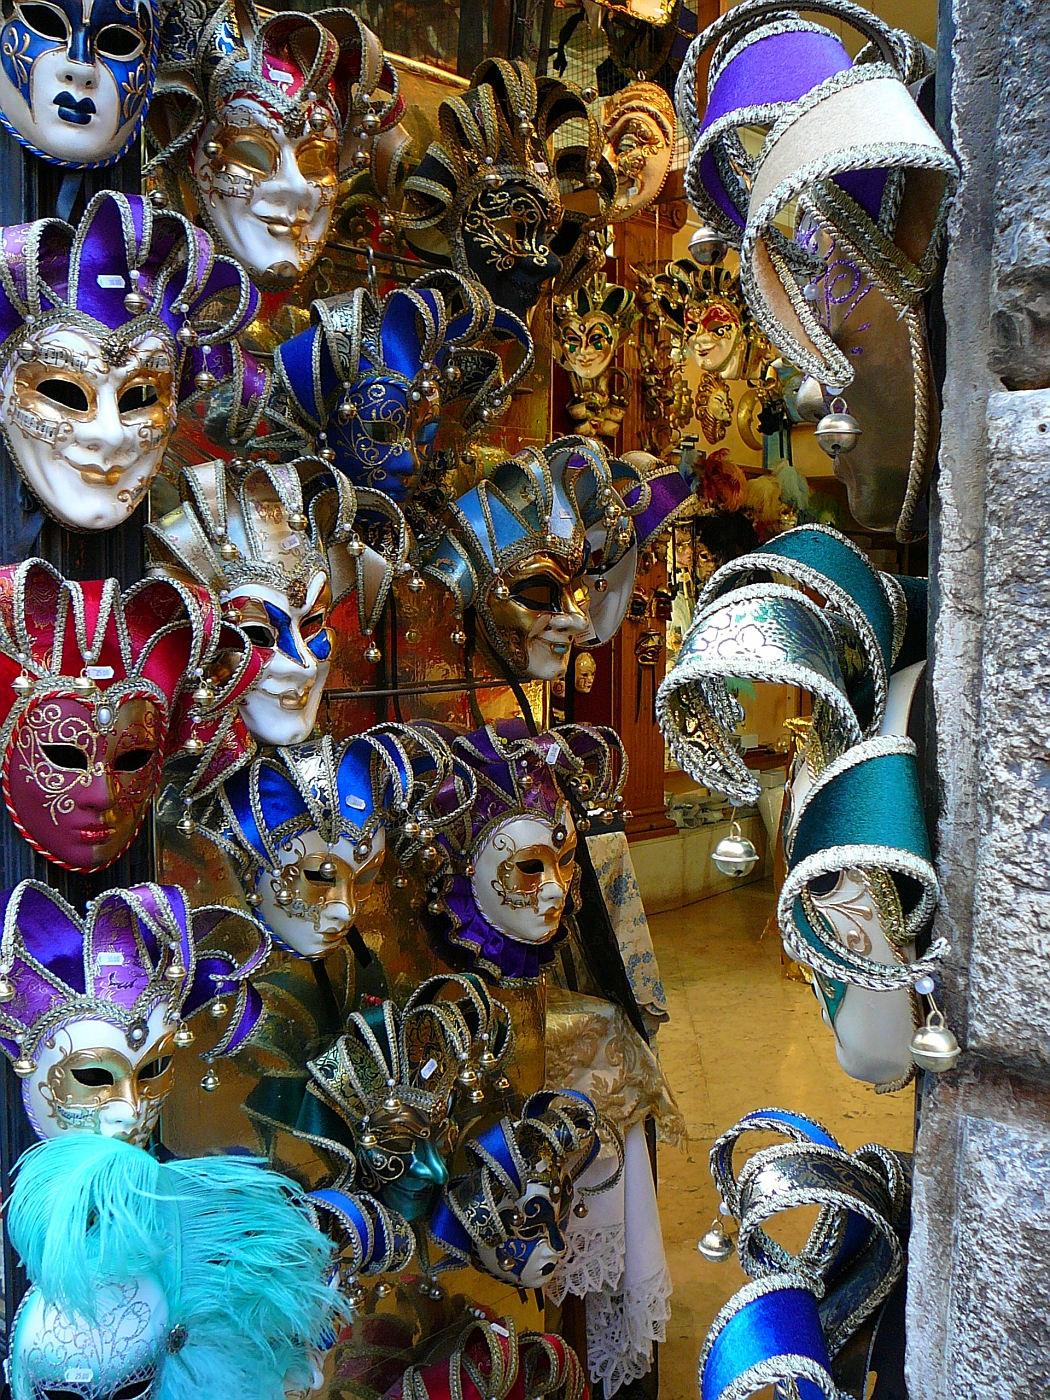 Shelly just loved these masks